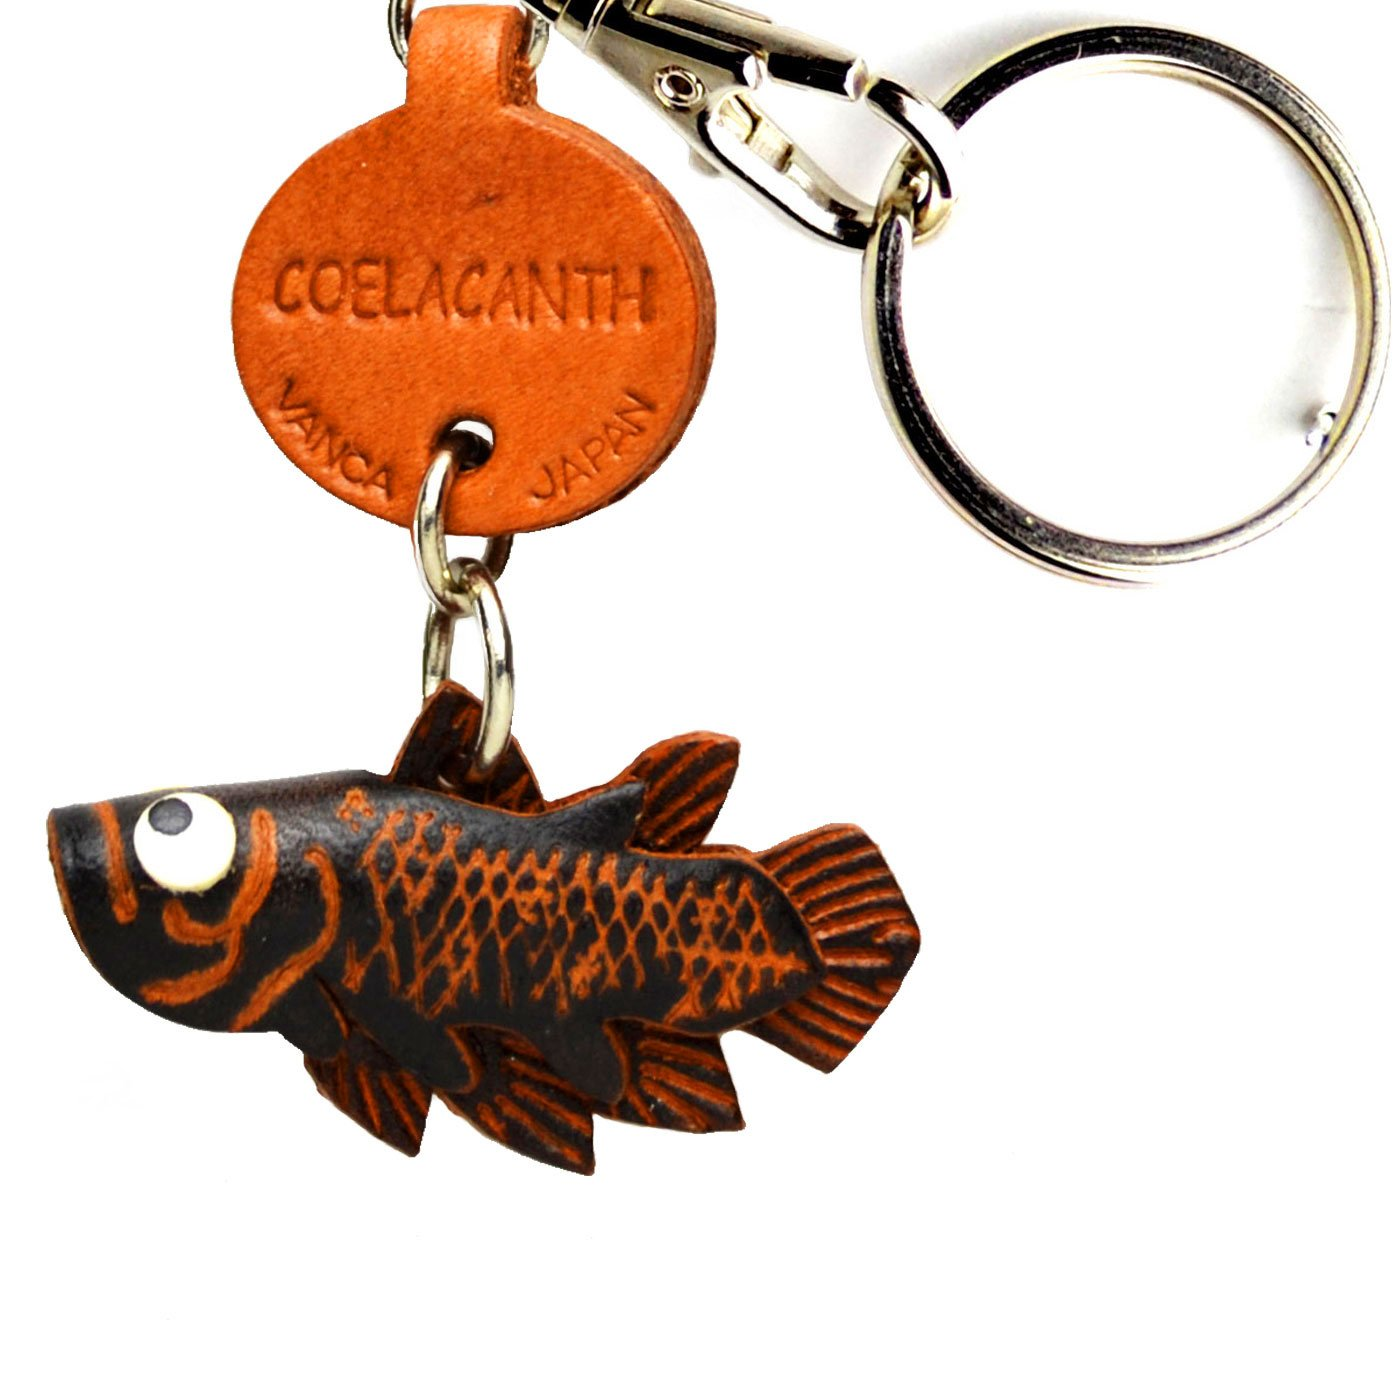 Coelacanthレザー魚/ SeaAnimal SeaAnimal Small B008DPW20K Keychains VANCA Small craft-collectibleキーリング日本製 B008DPW20K, シープウィング:4699f209 --- awardsame.club